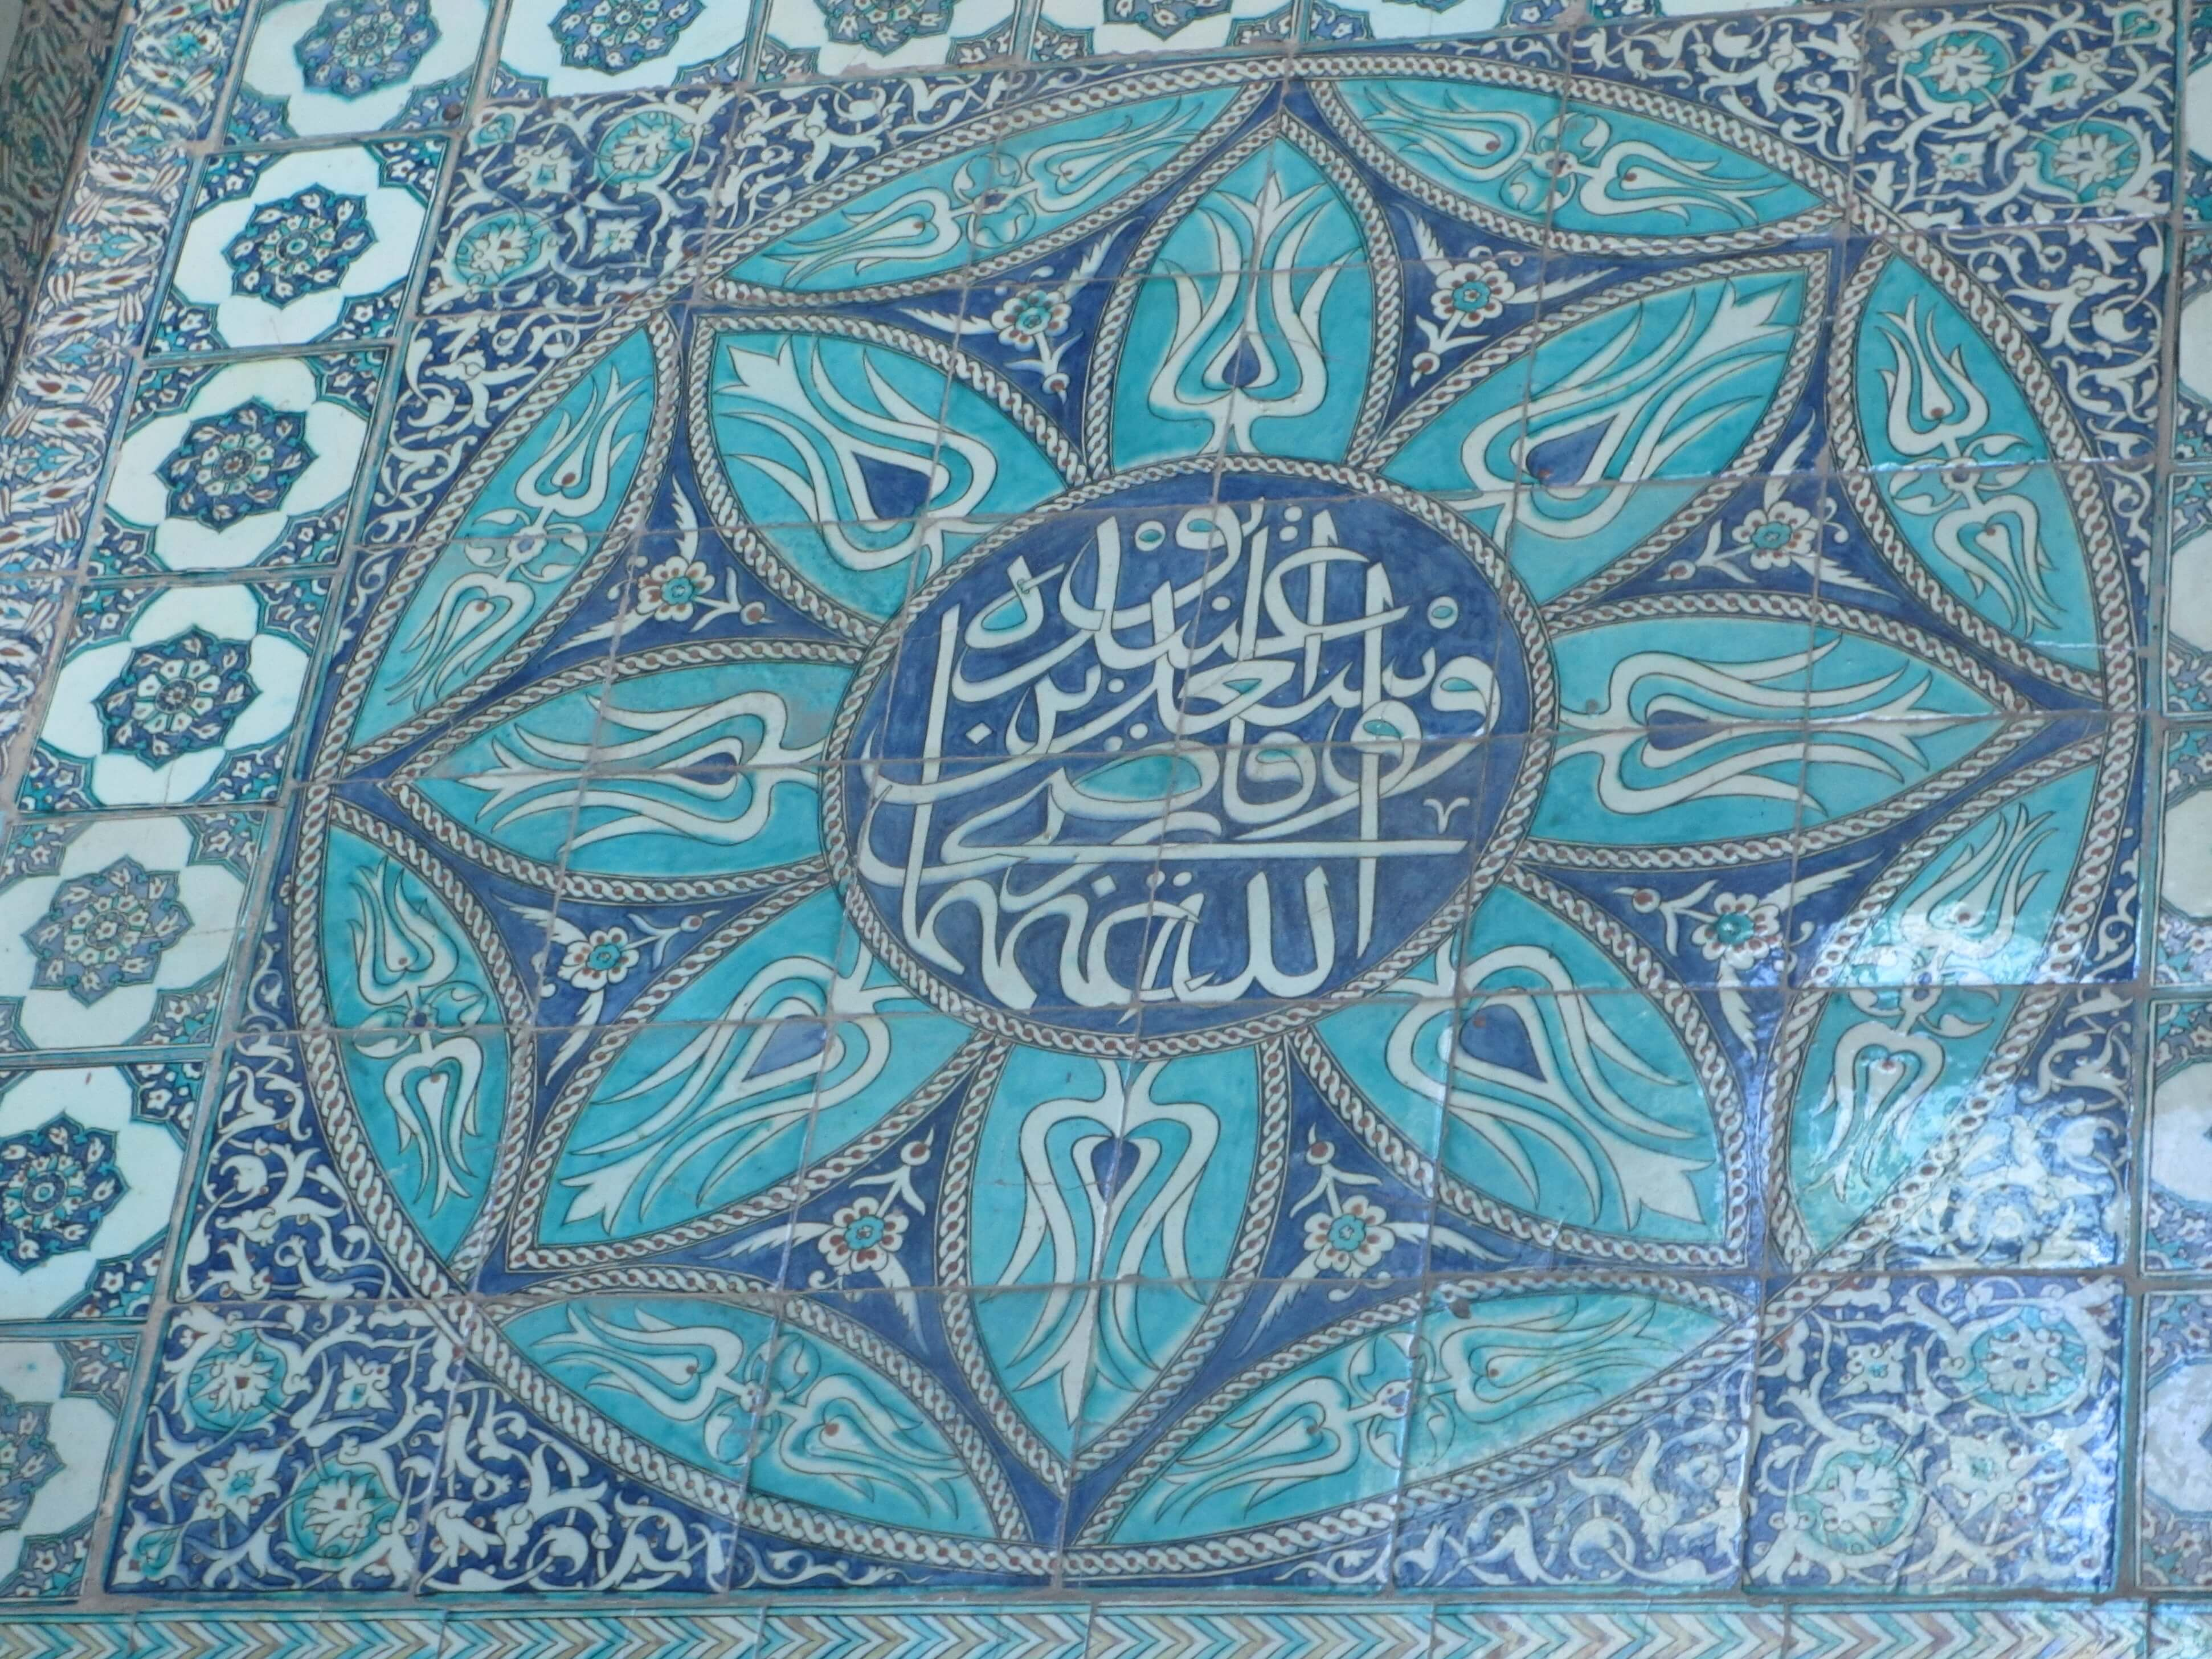 Blue Iznik tiles in a flower pattern, with Islamic writing in the centre